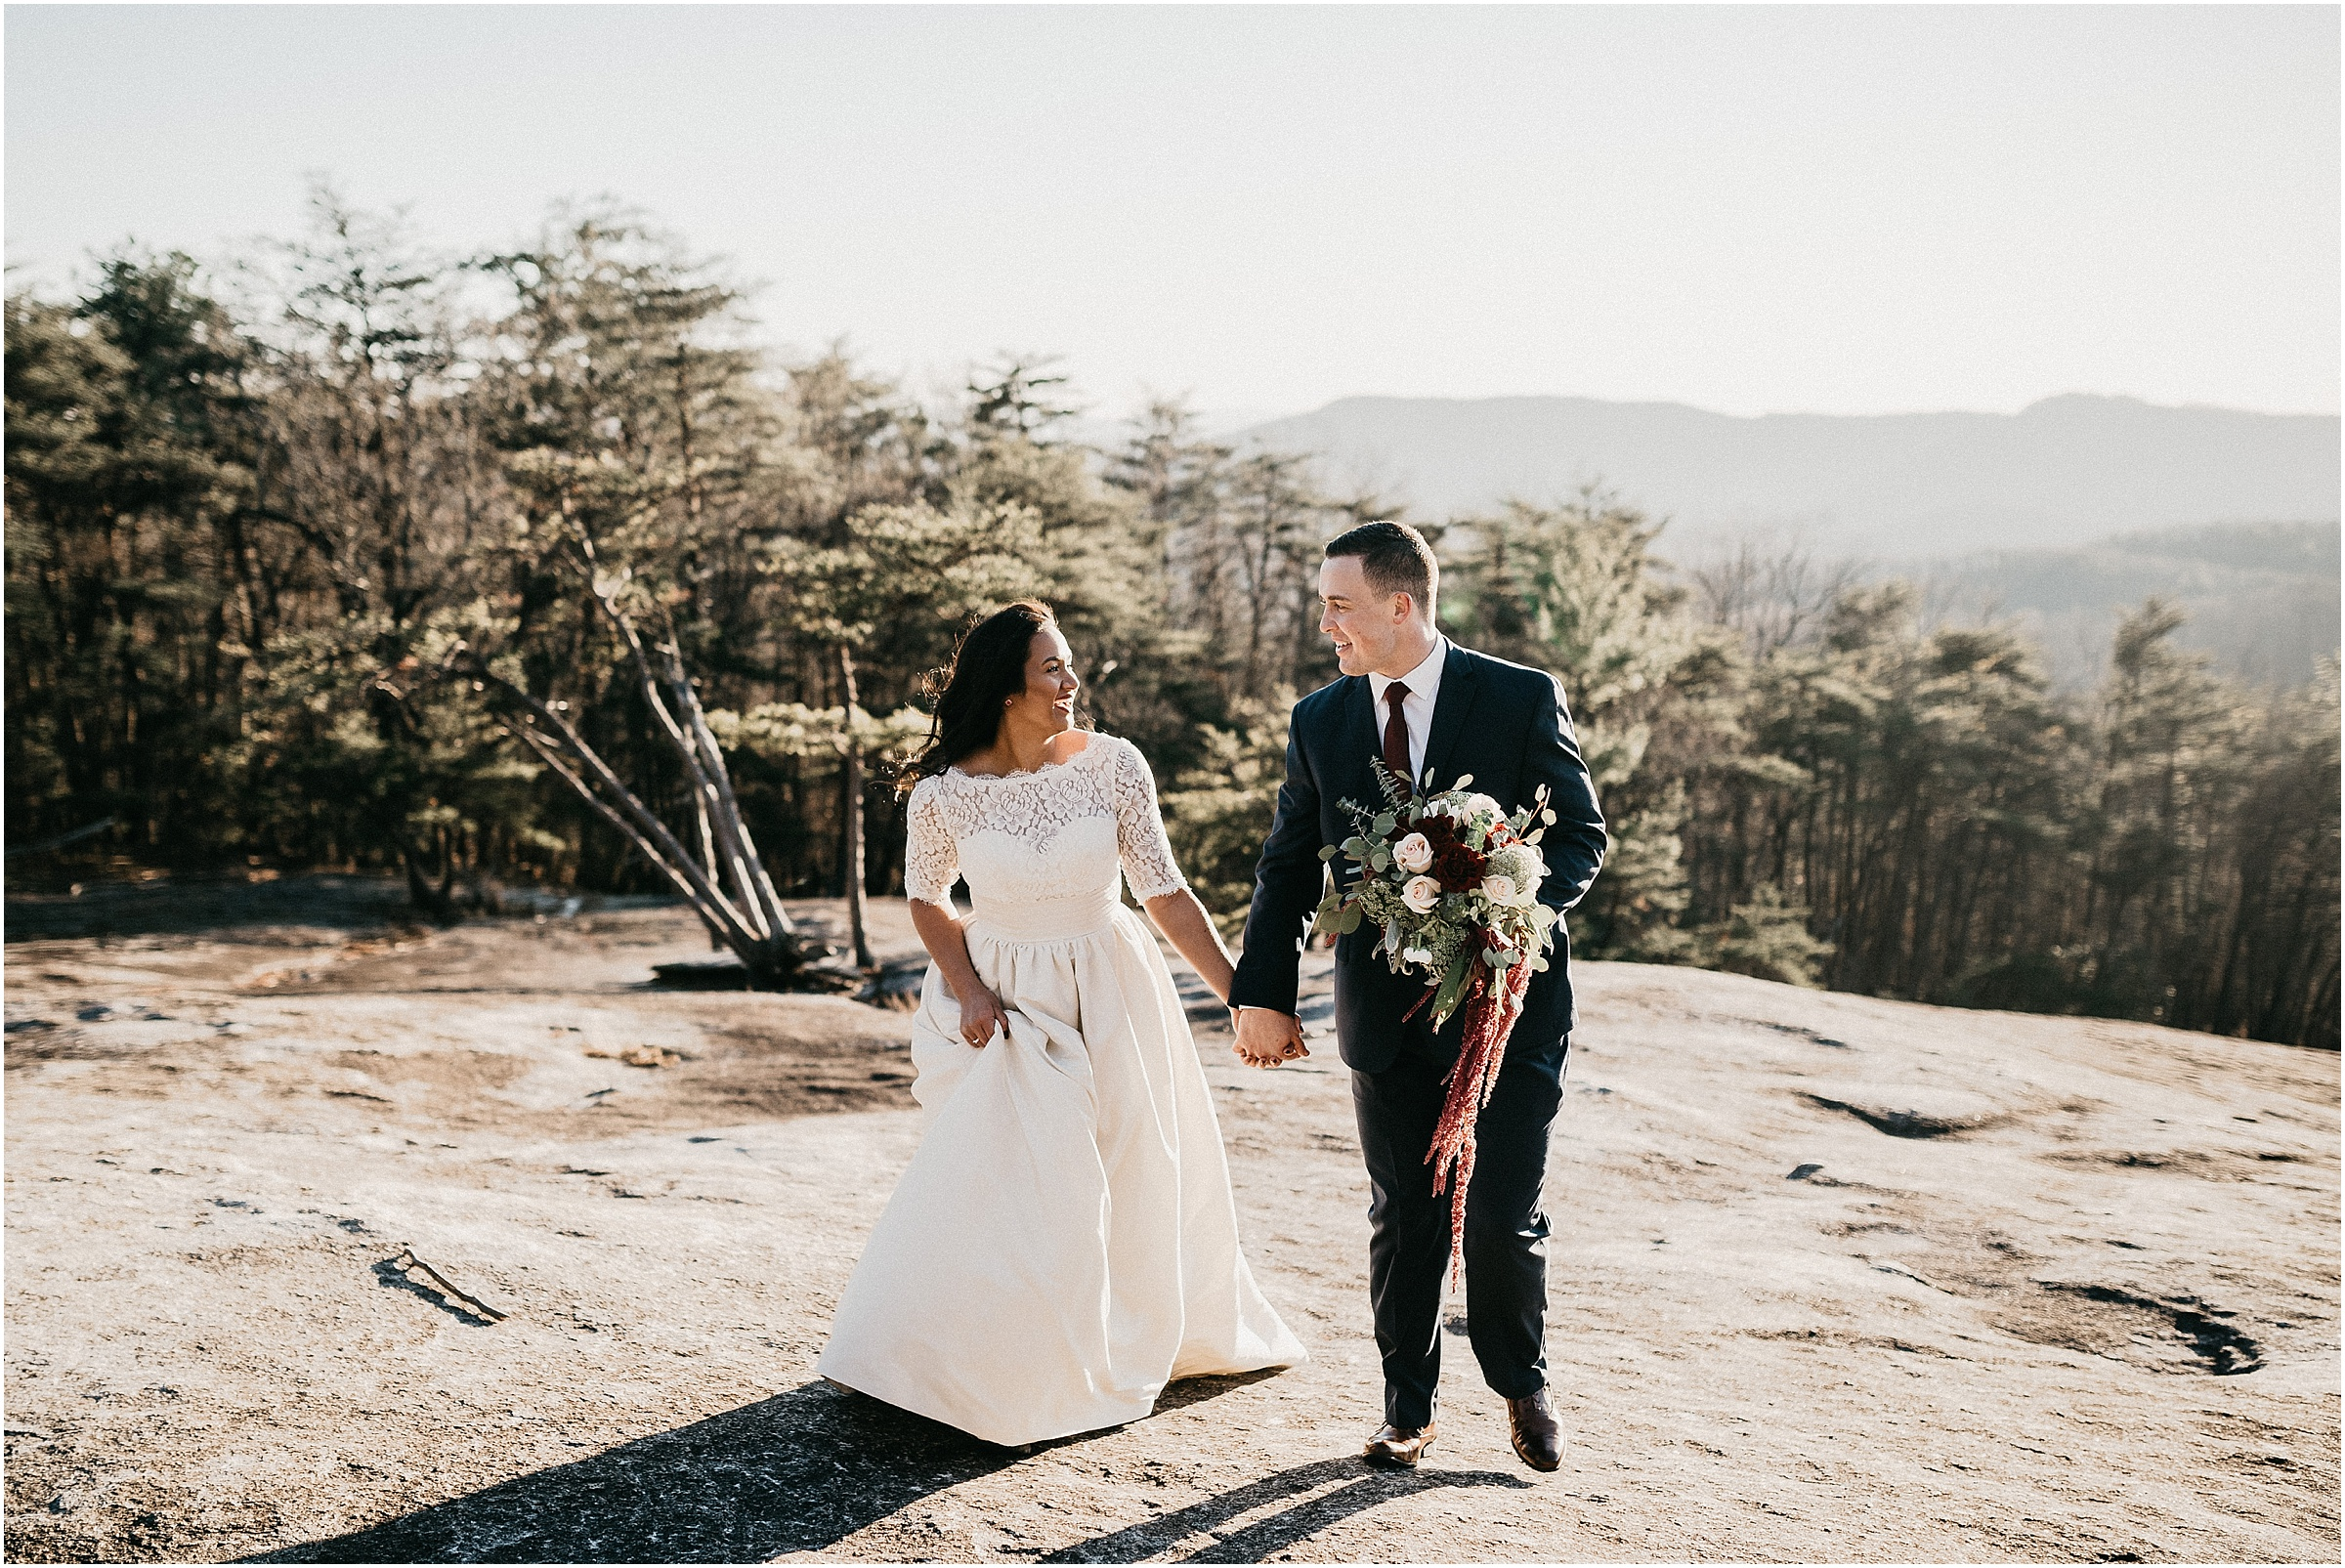 Stone_Mountain_NC_Elopement_30.JPG